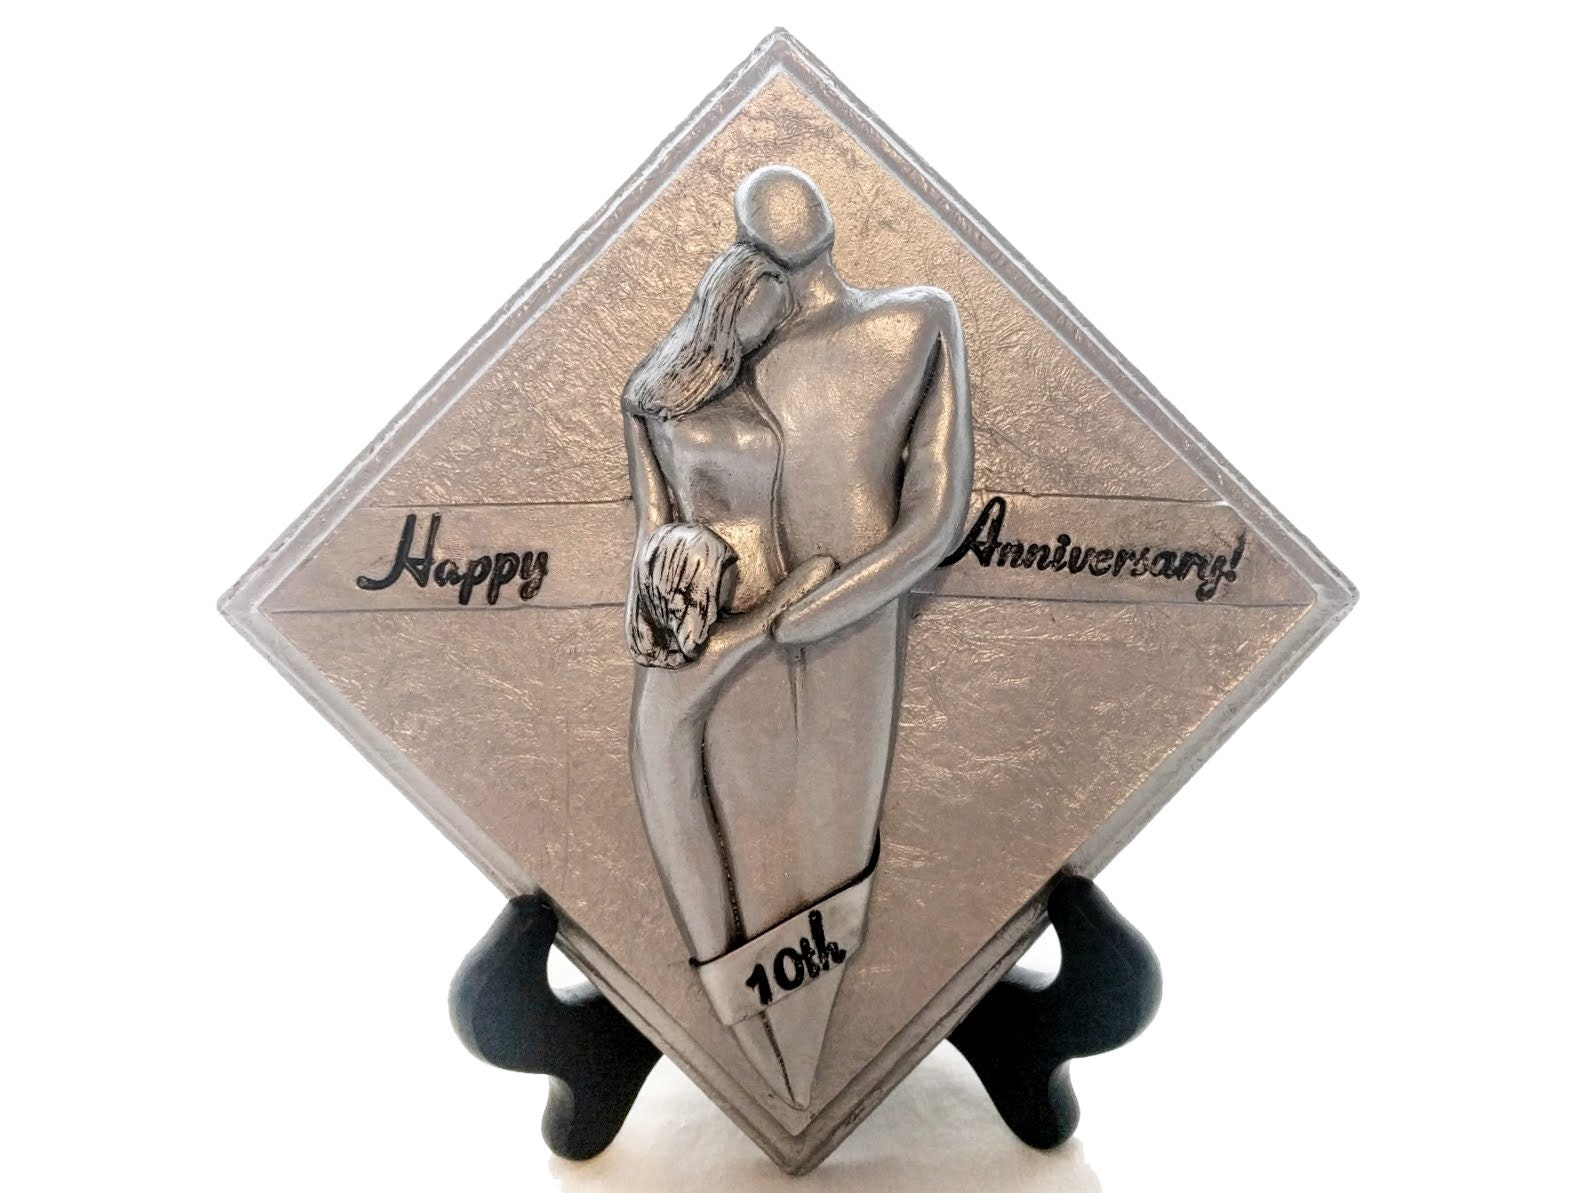 10th Wedding Anniversary Gift For Him: Happy 10th Anniversary Family Of Three Plaque, Tin